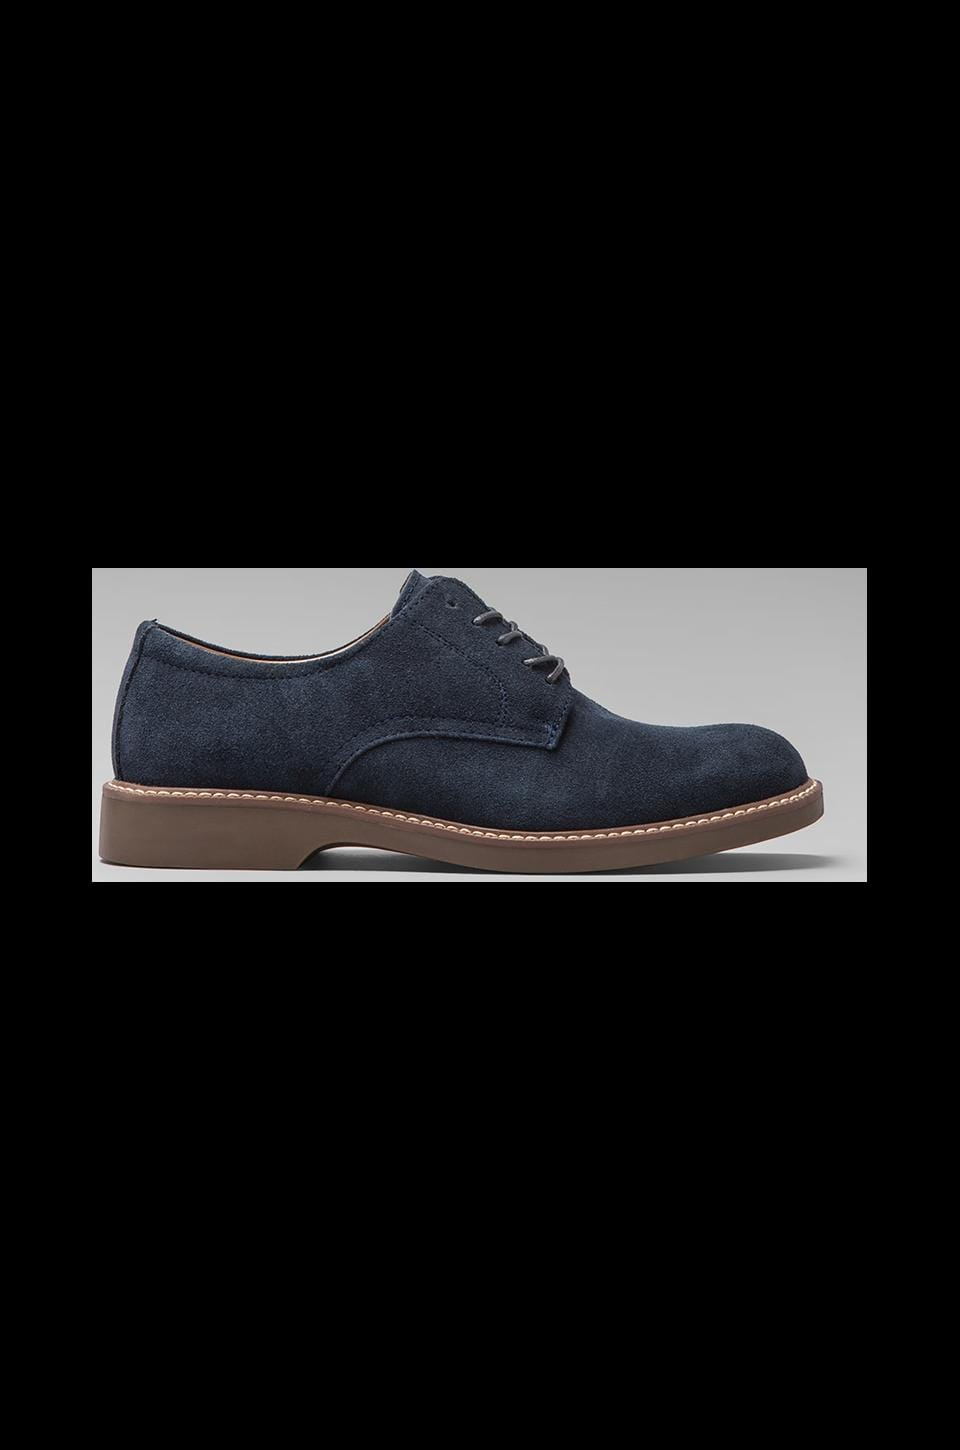 Bass Pasadena in Navy